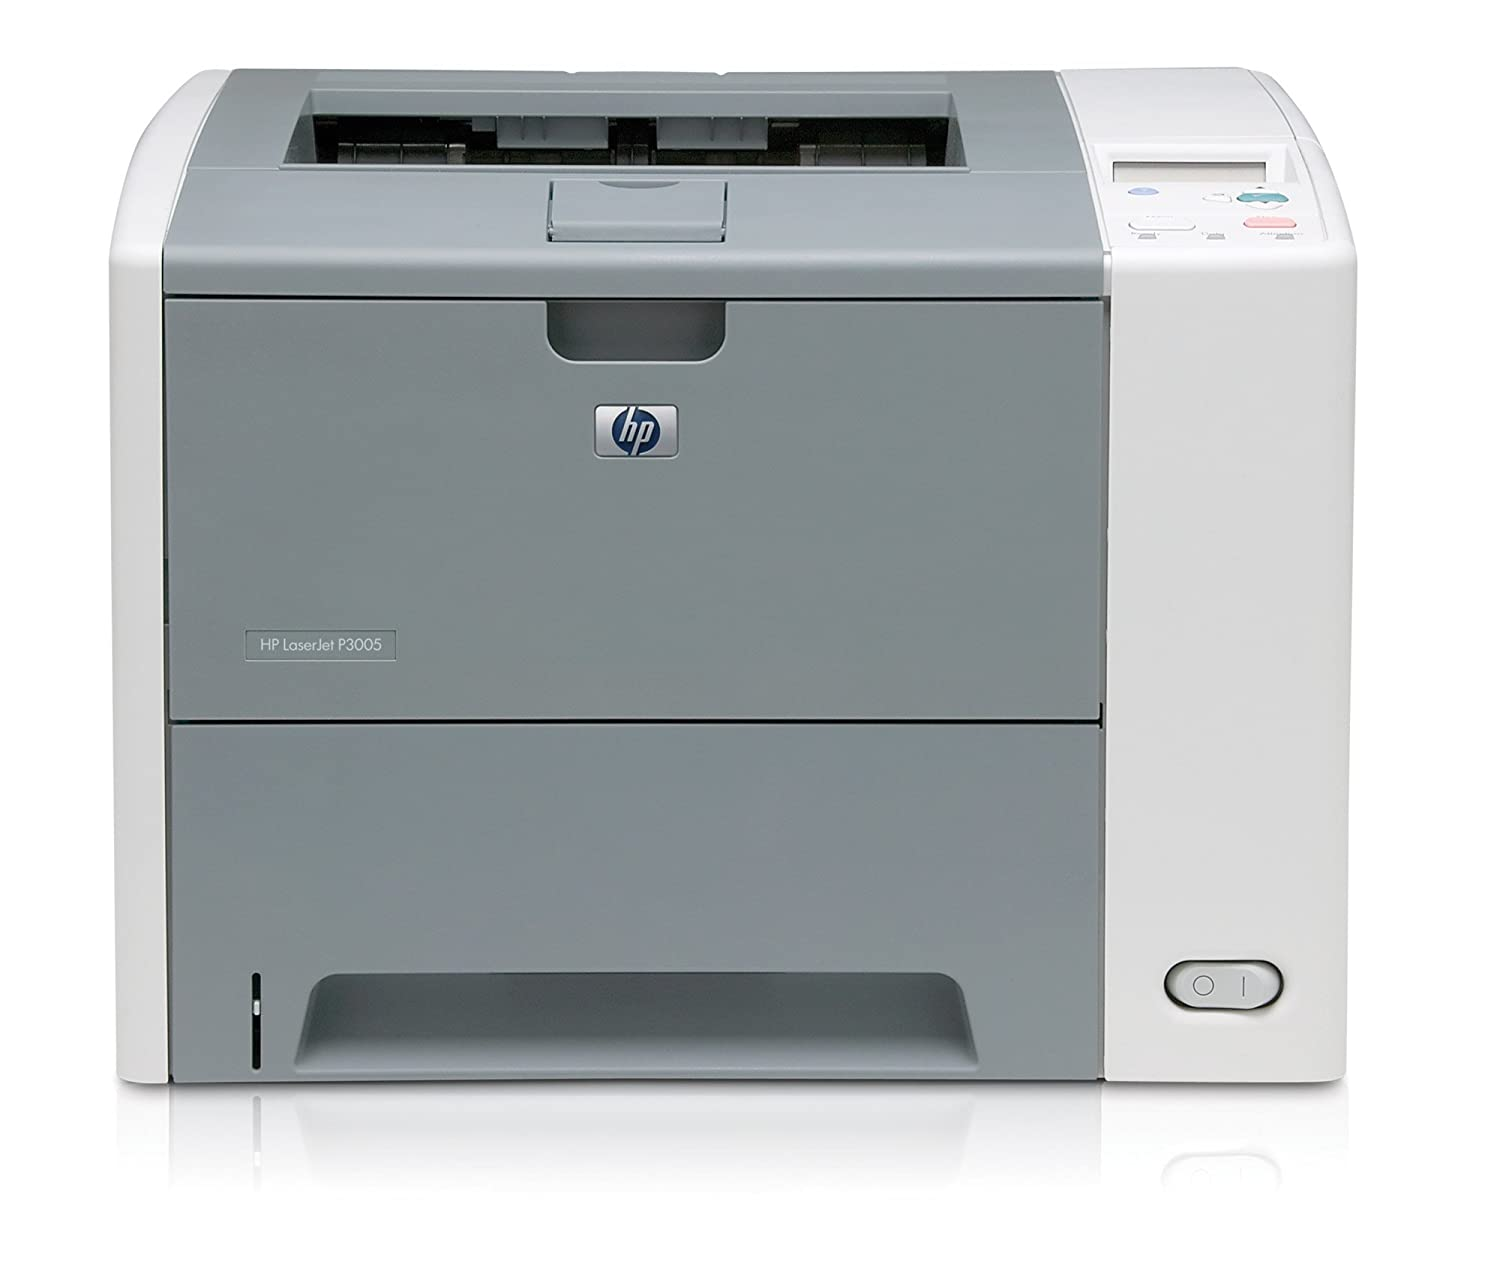 P3005 HP PRINTER DRIVERS FOR WINDOWS XP